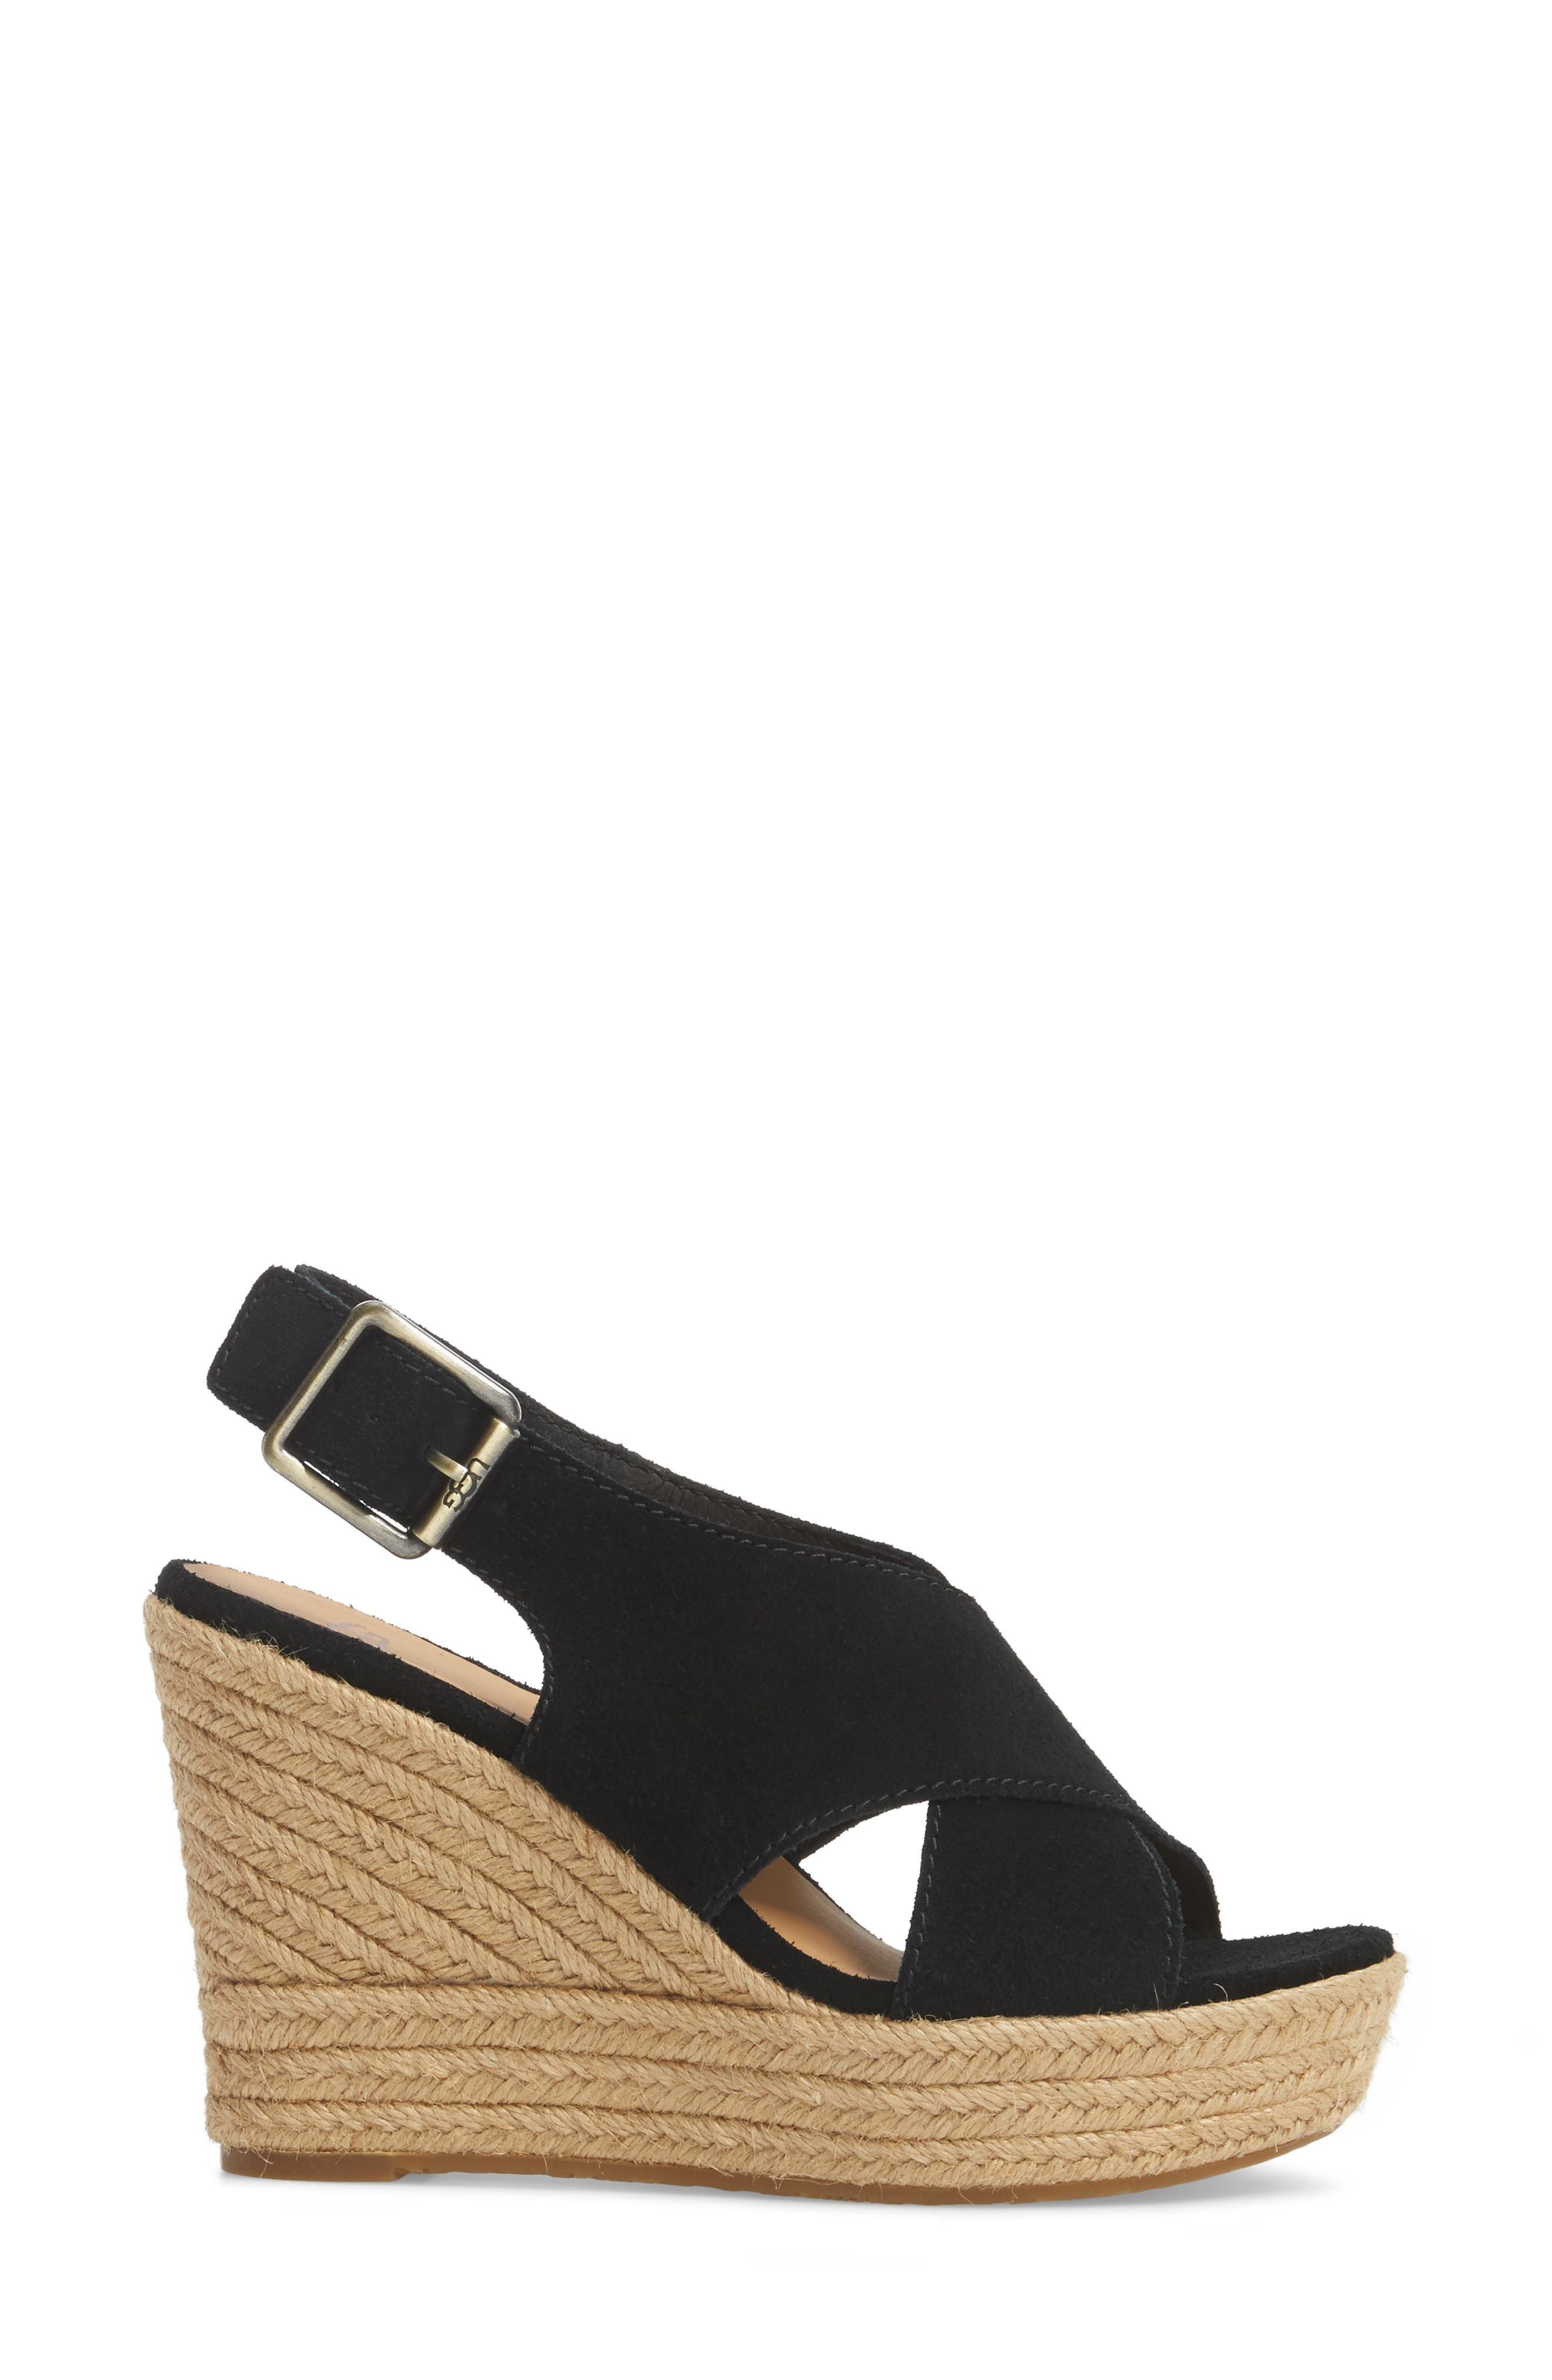 Harlow Platform Wedge Sandal,                             Alternate thumbnail 3, color,                             001